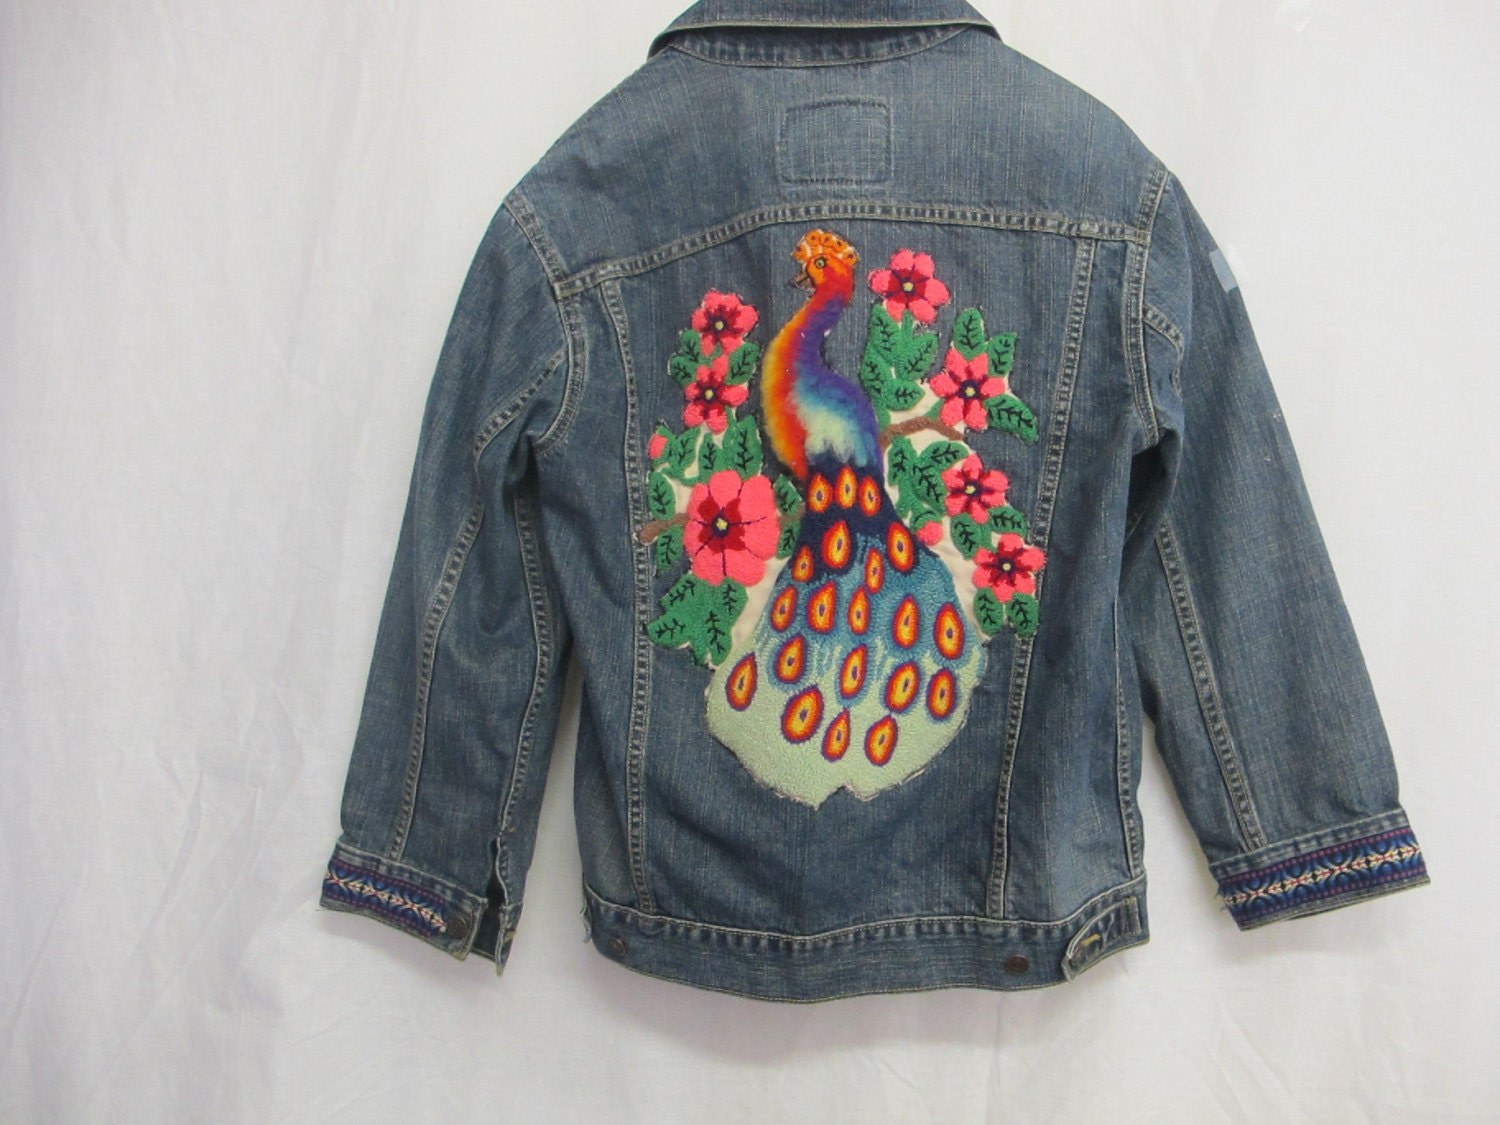 Levi Jacket Denim Jacket Embroidered Denim Distressed Vintage